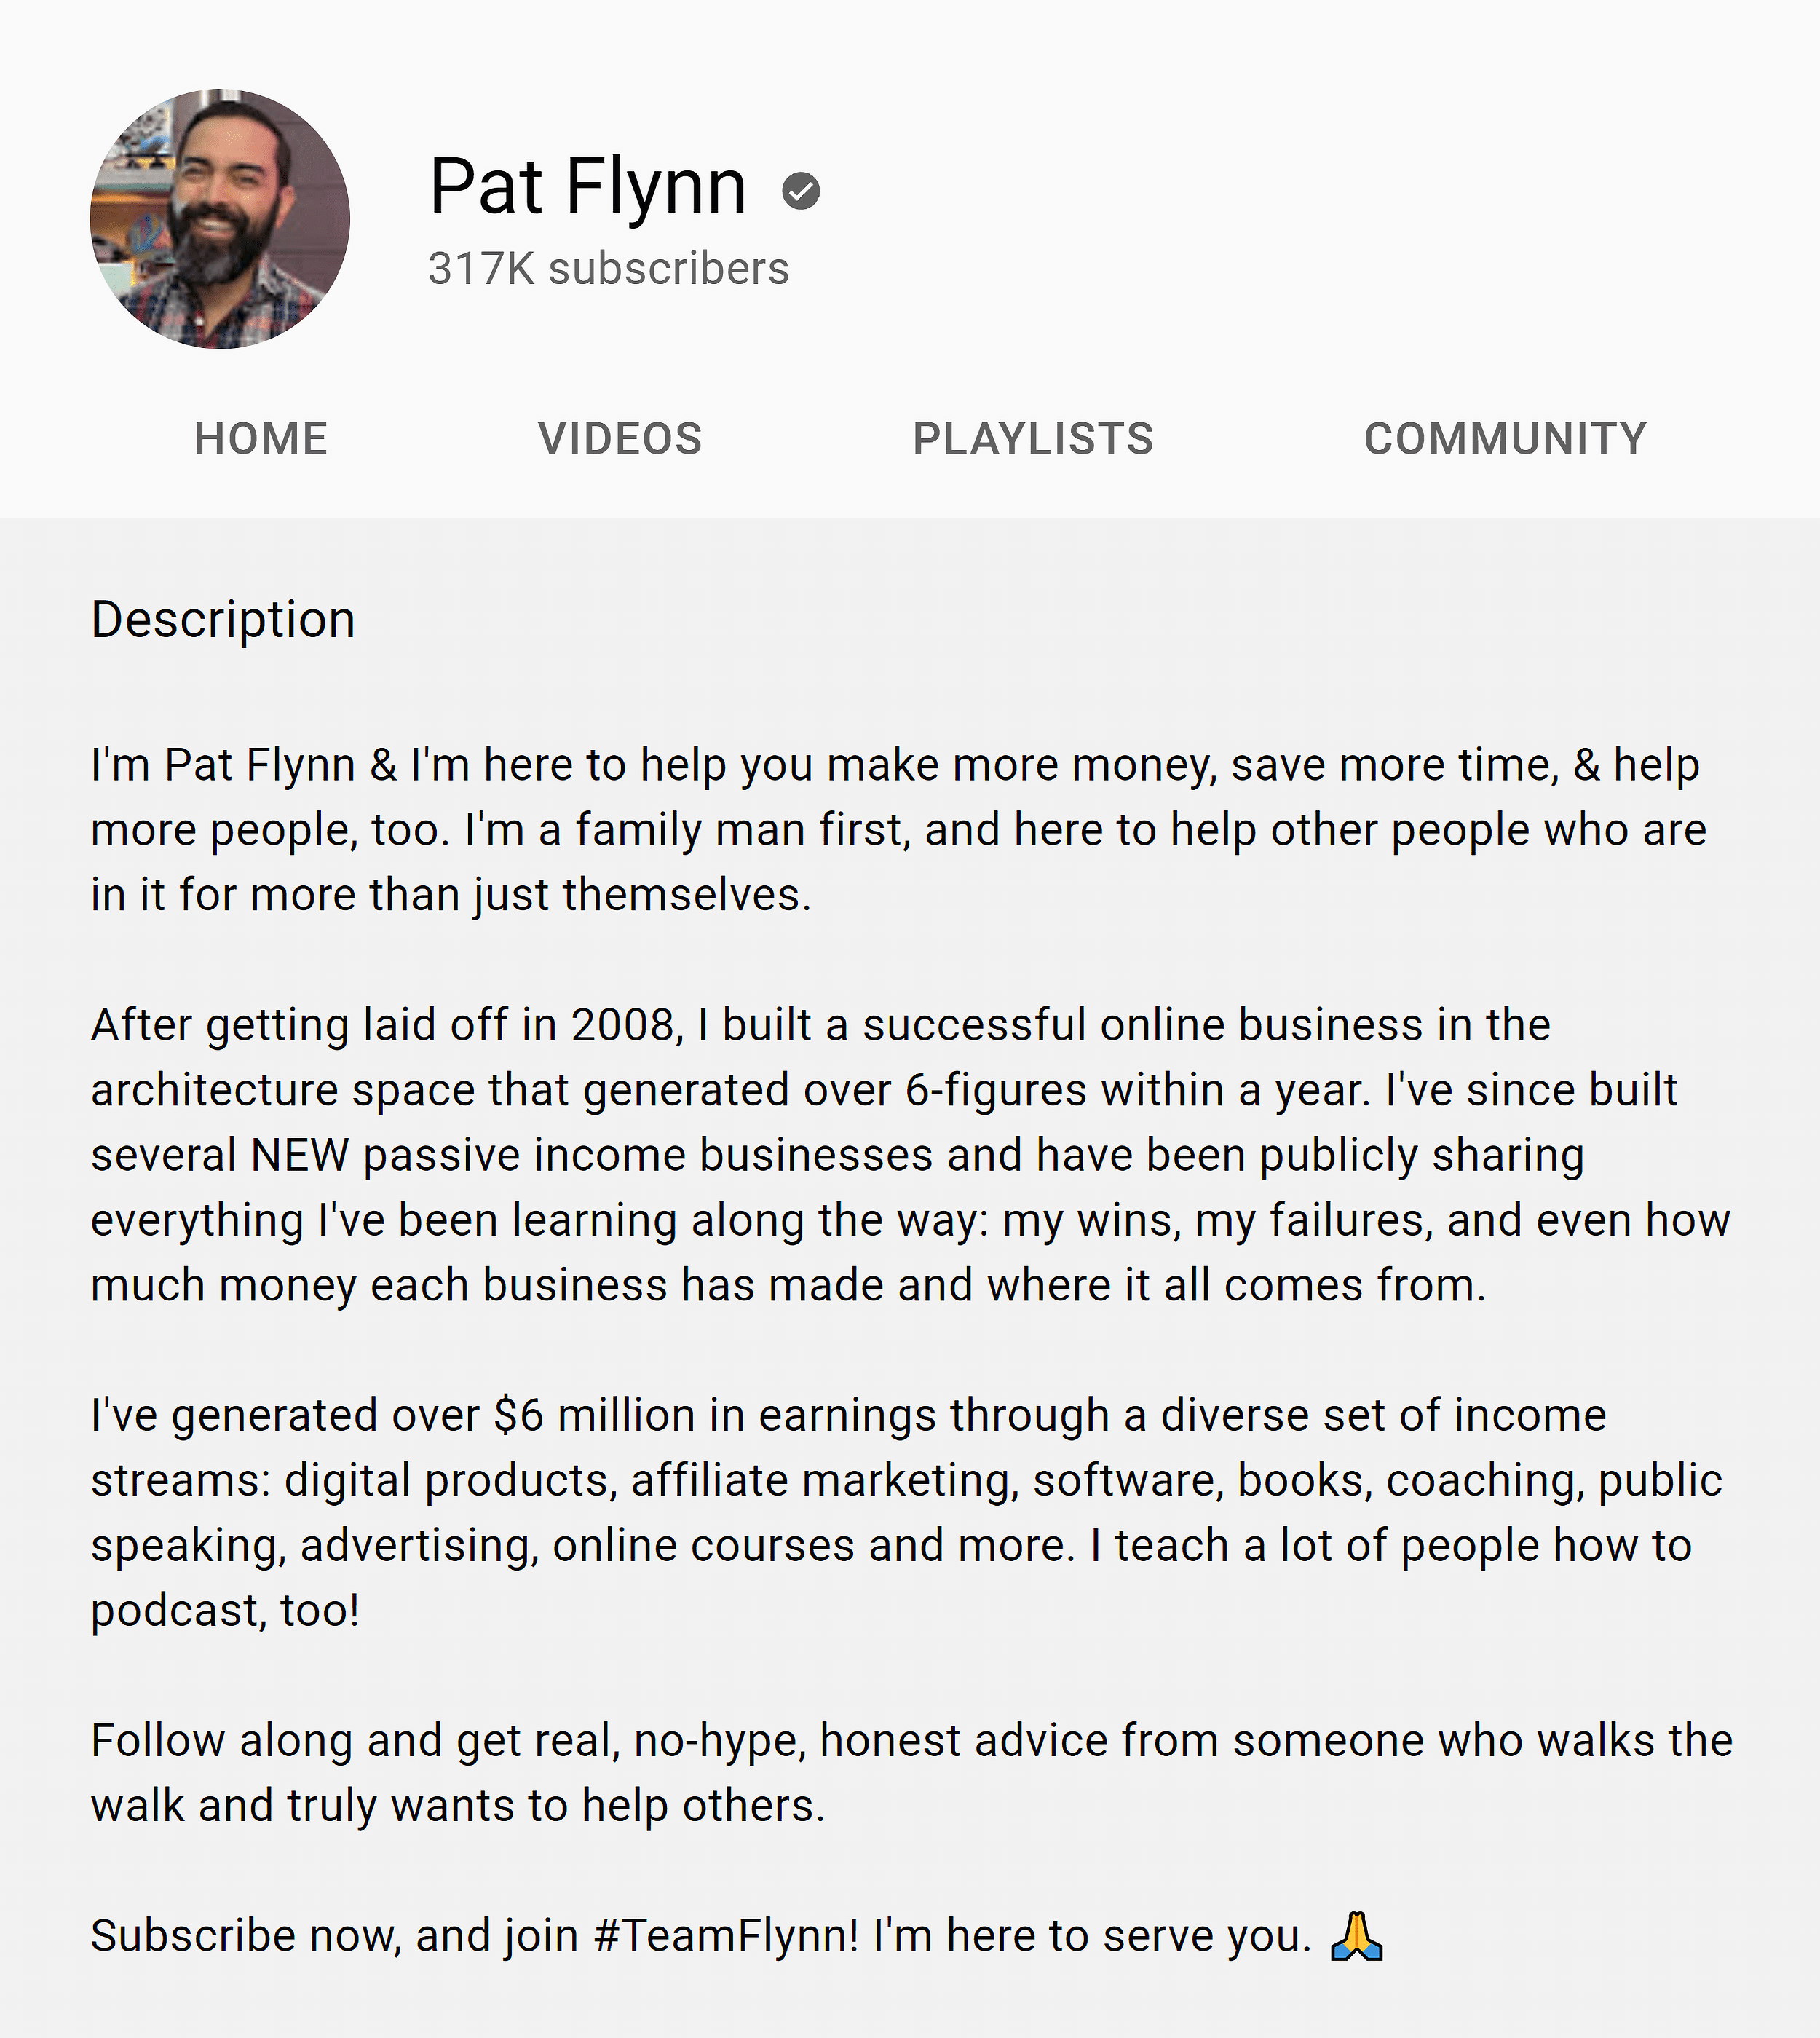 Pat Flynn about section